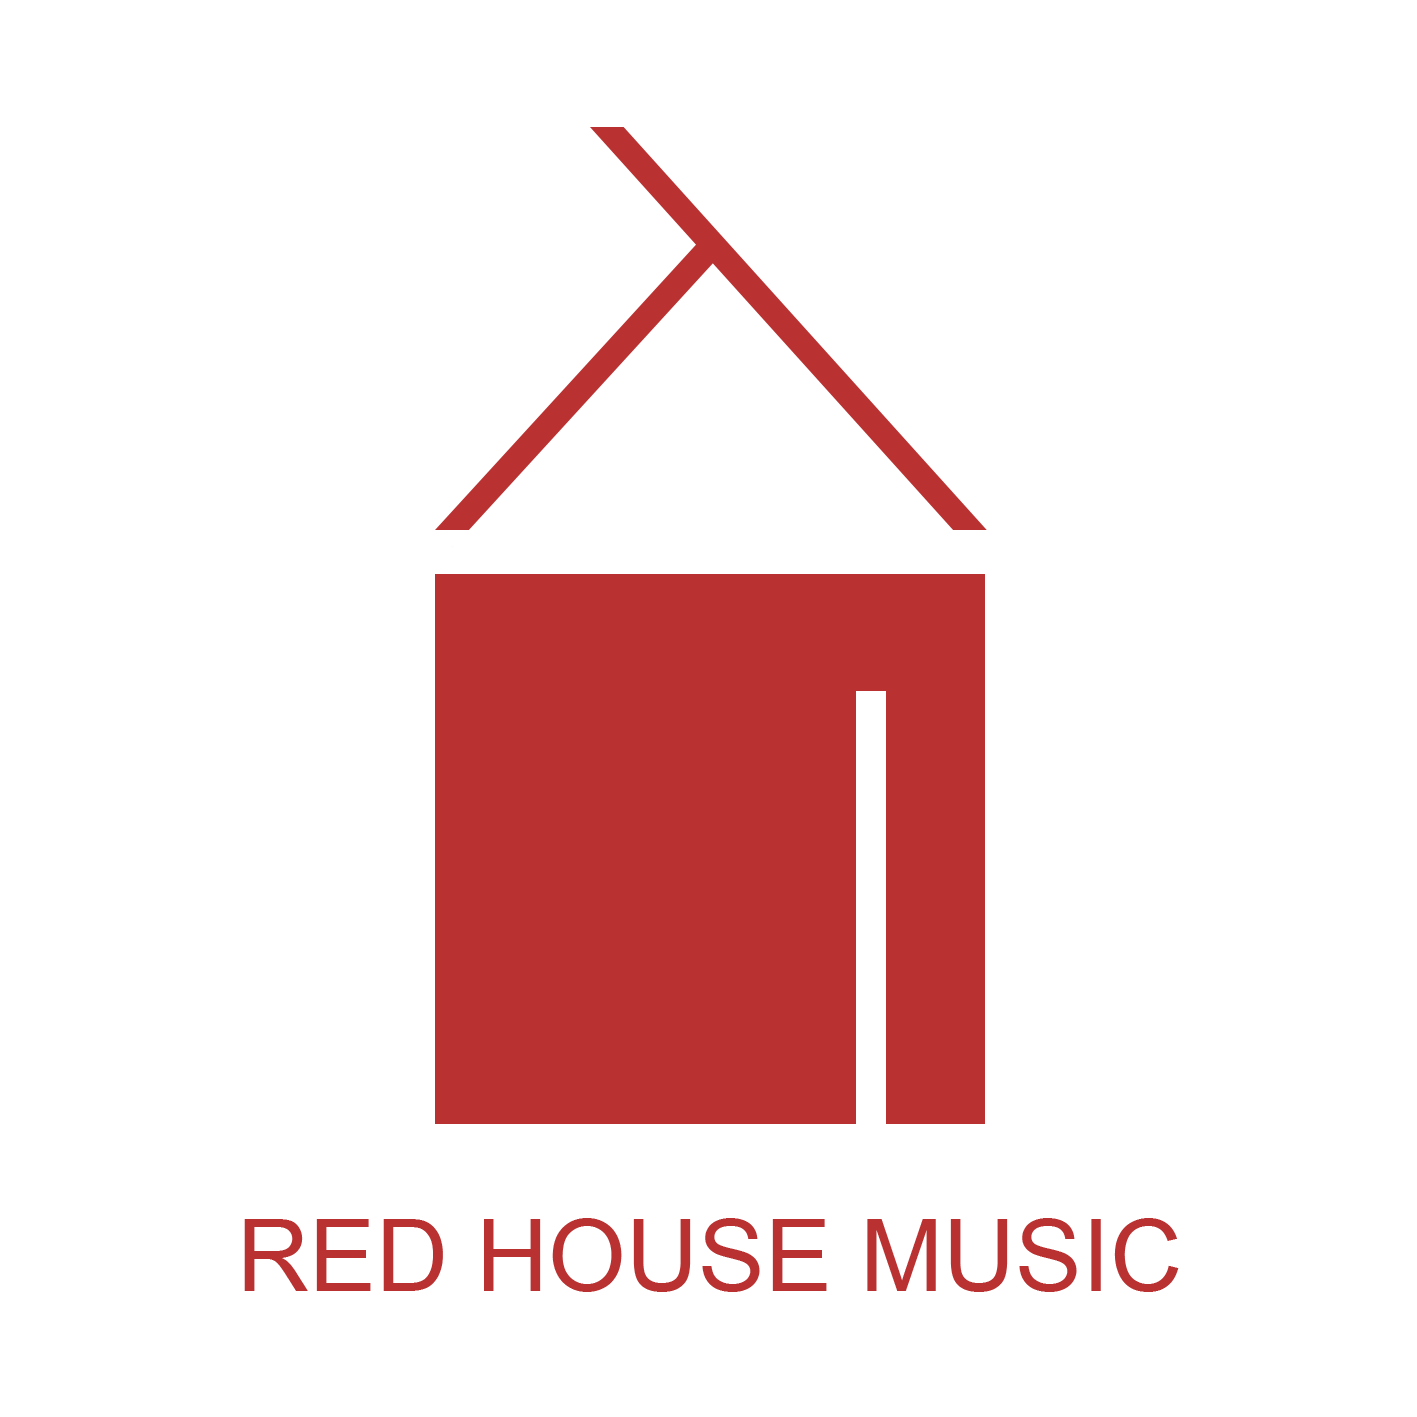 Red House Music